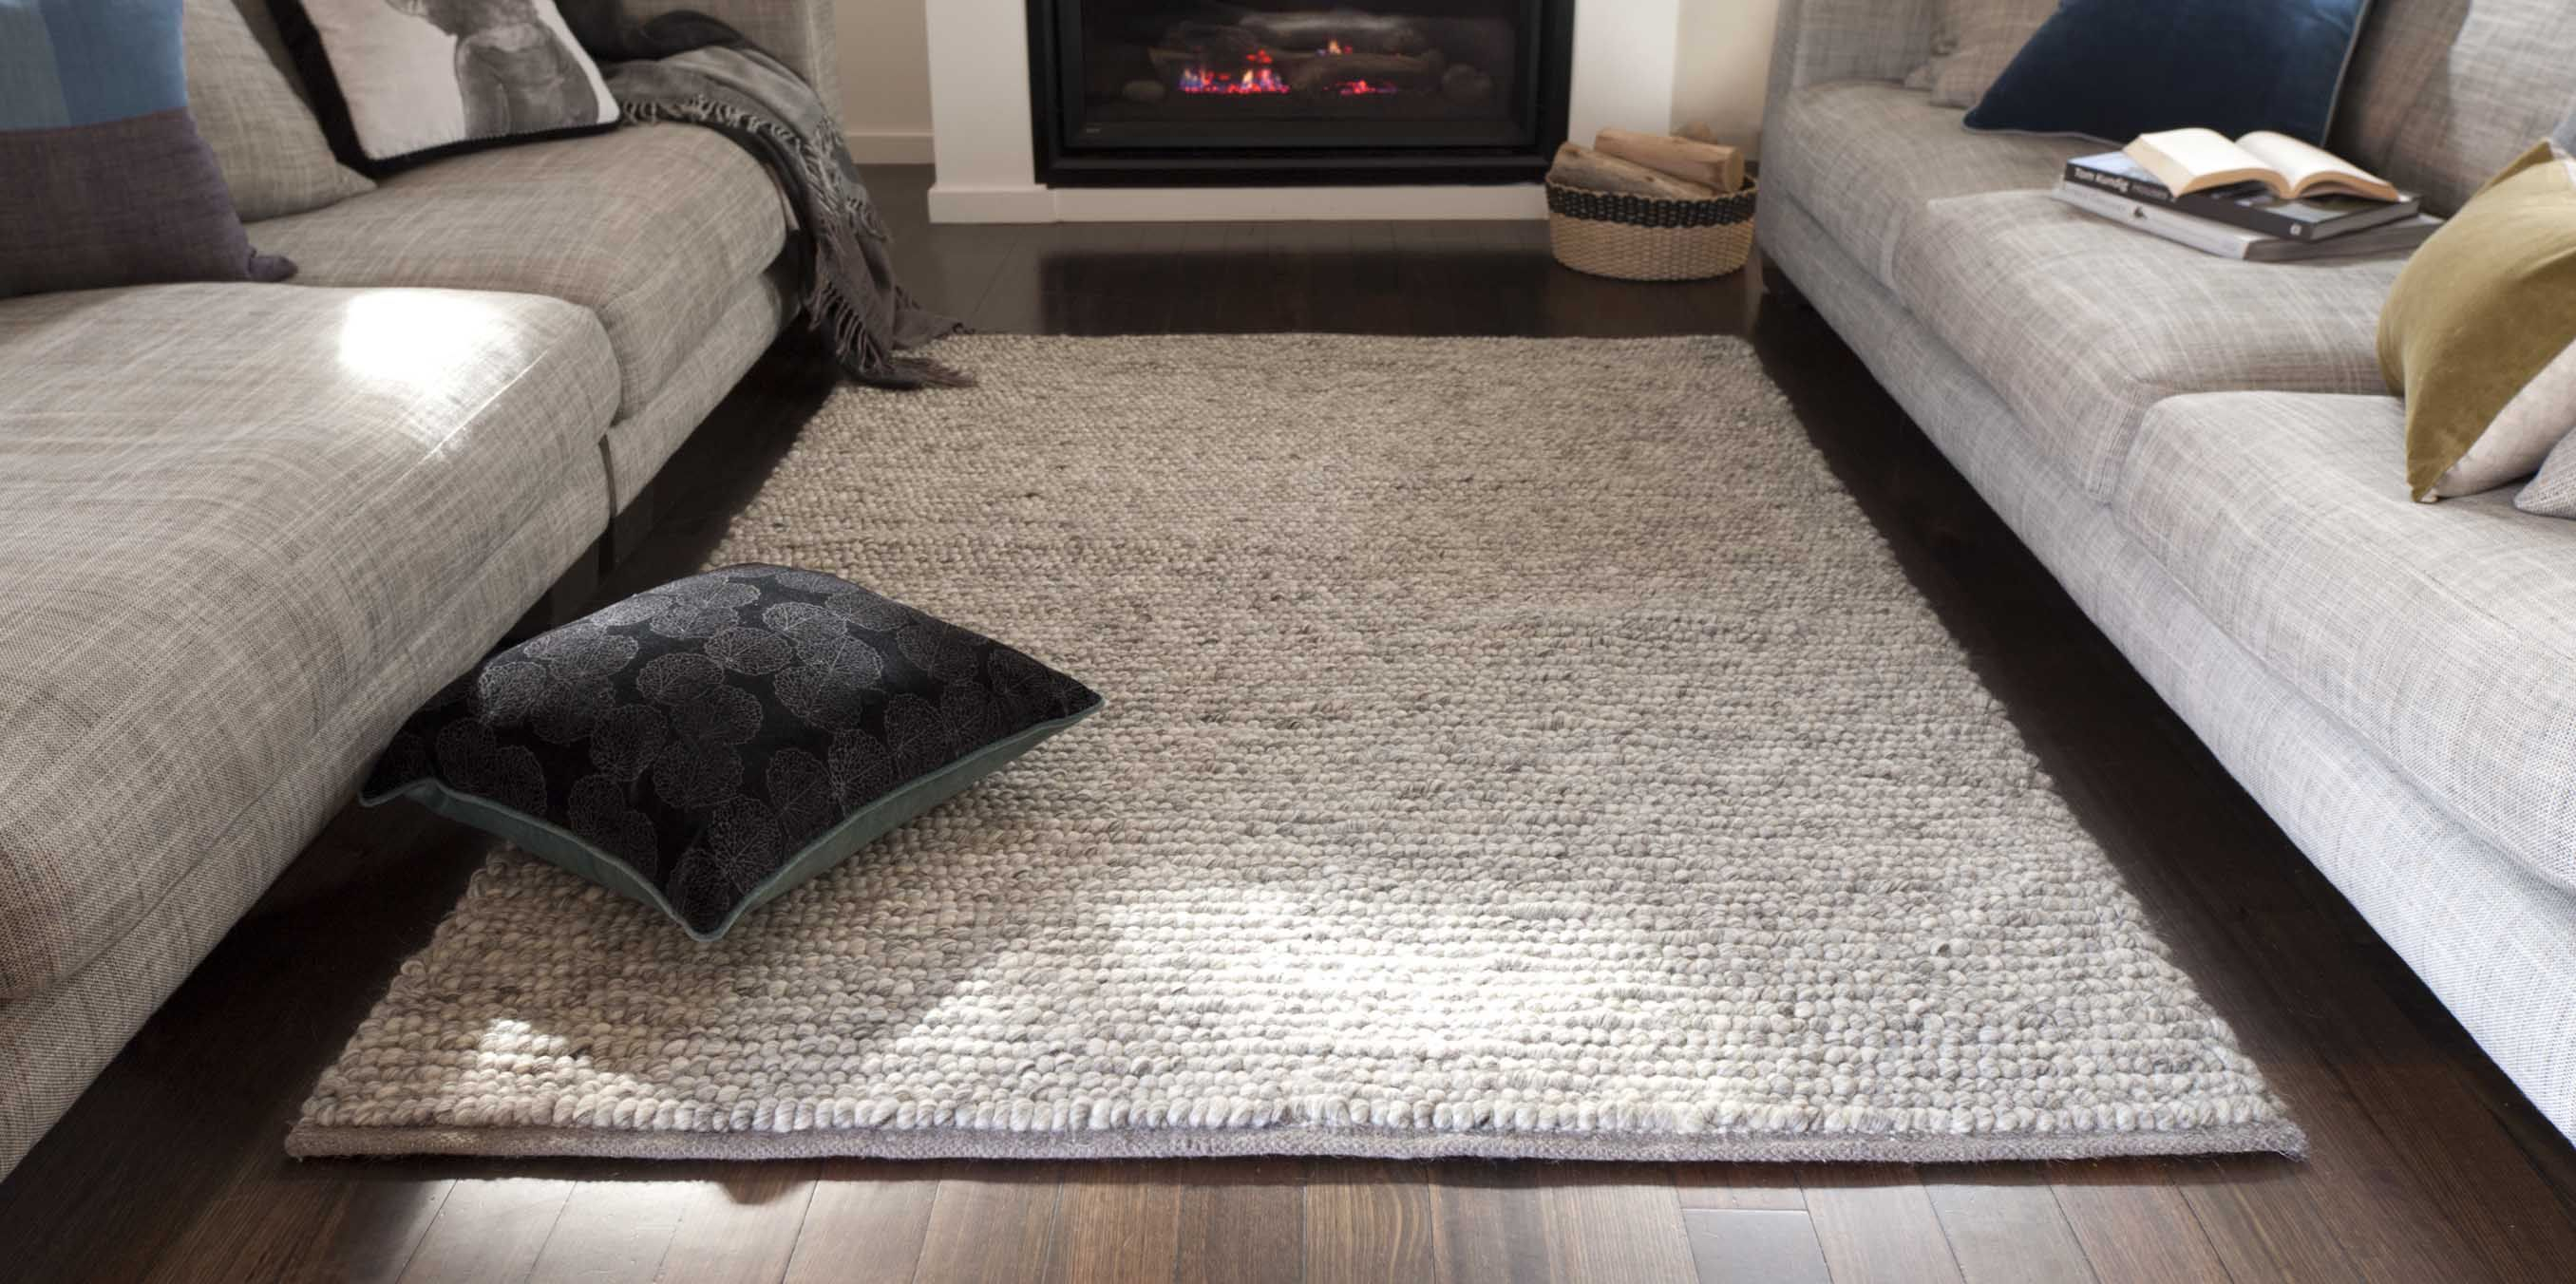 Get This Rug And More At Express